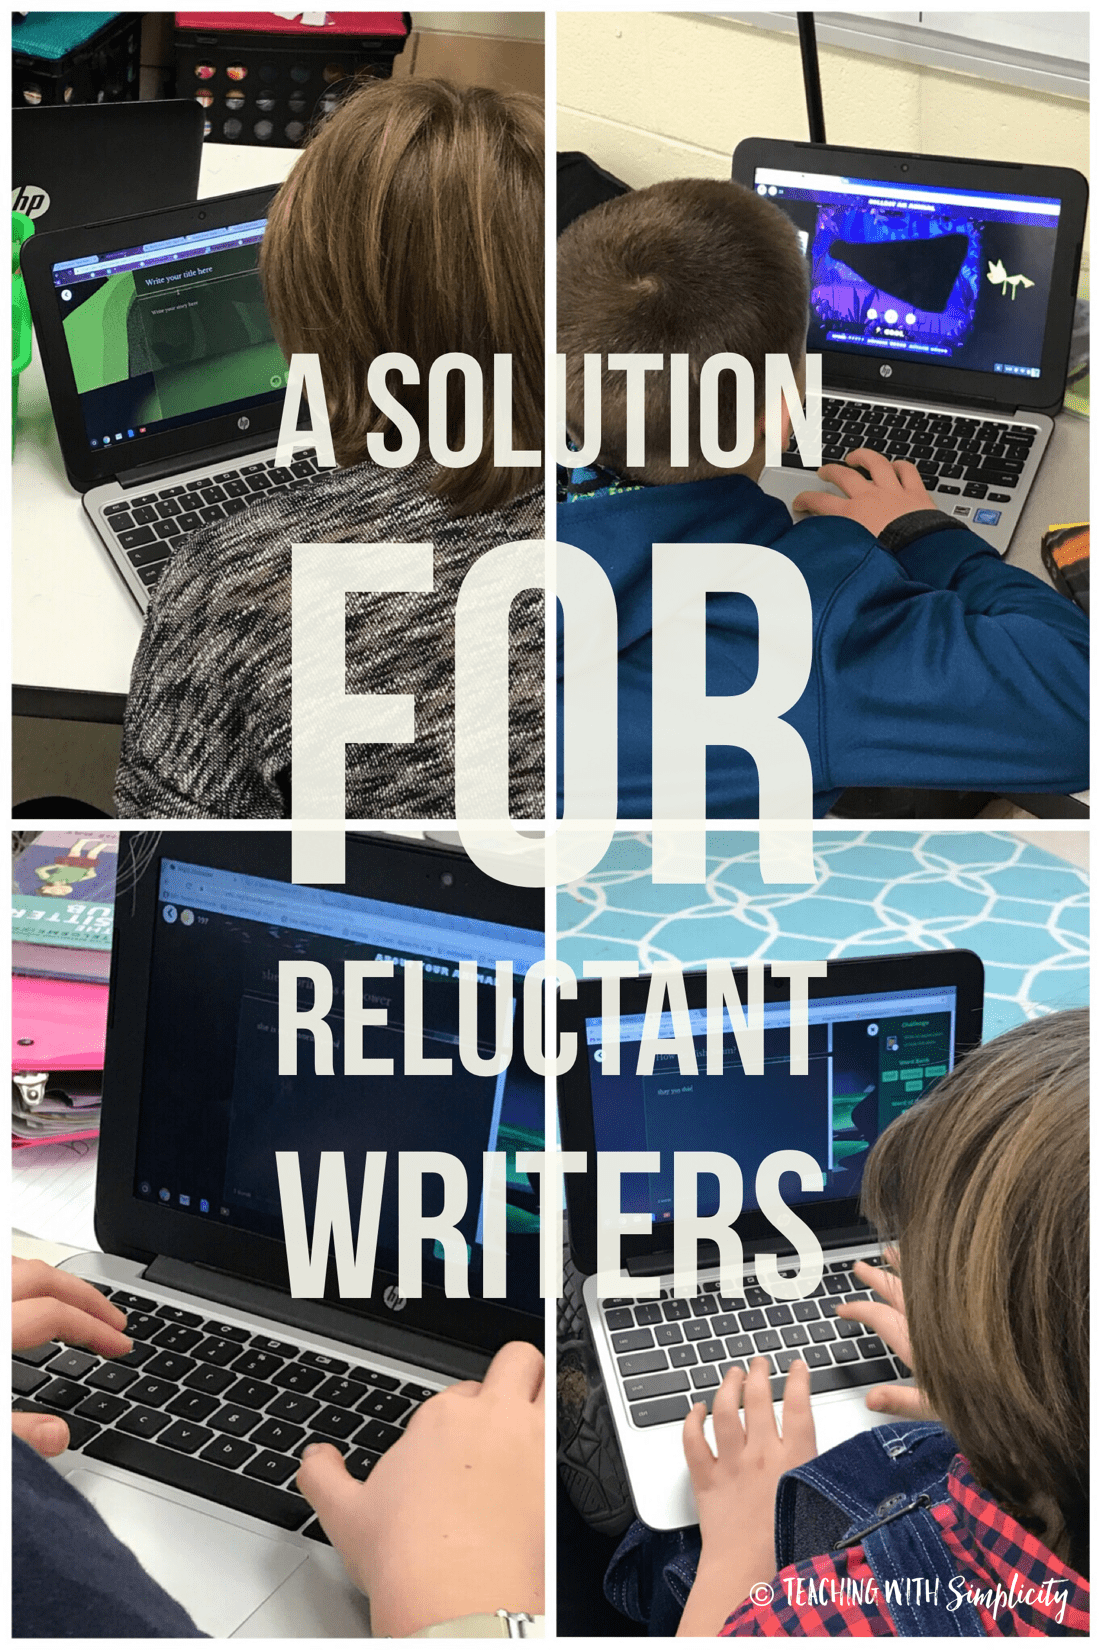 , A Solution for Reluctant Writers